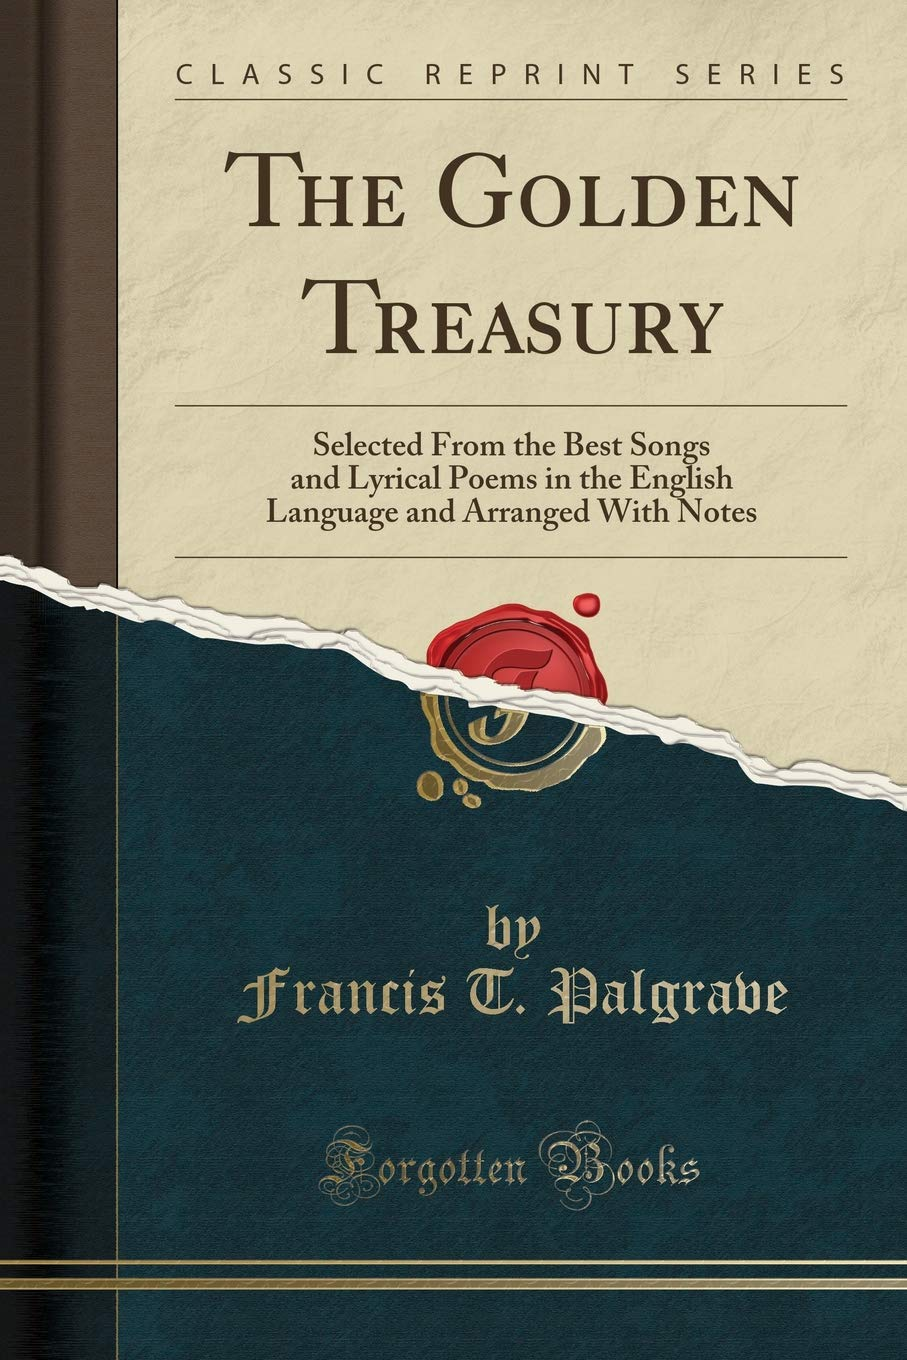 The Golden Treasury: Selected From the Best Songs and Lyrical Poems in the English Language and Arranged With Notes (Classic Reprint) PDF